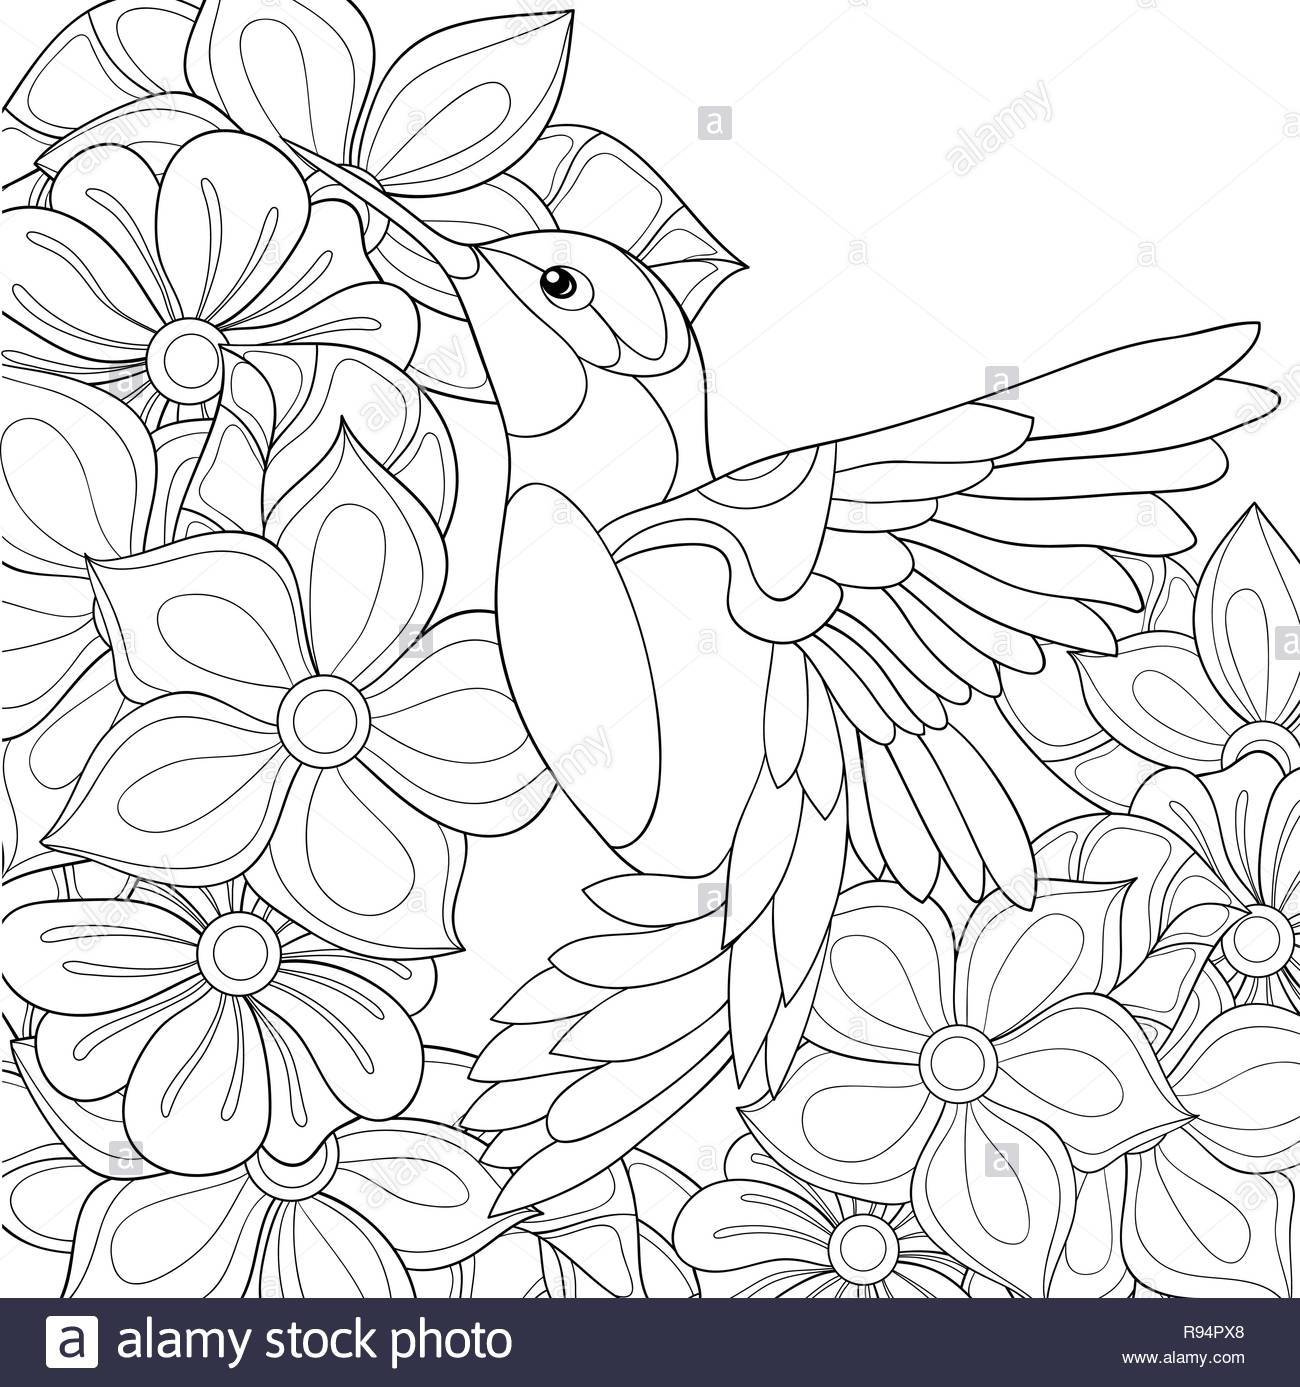 A Cute Hummingbird On The Background With Flowers Image For